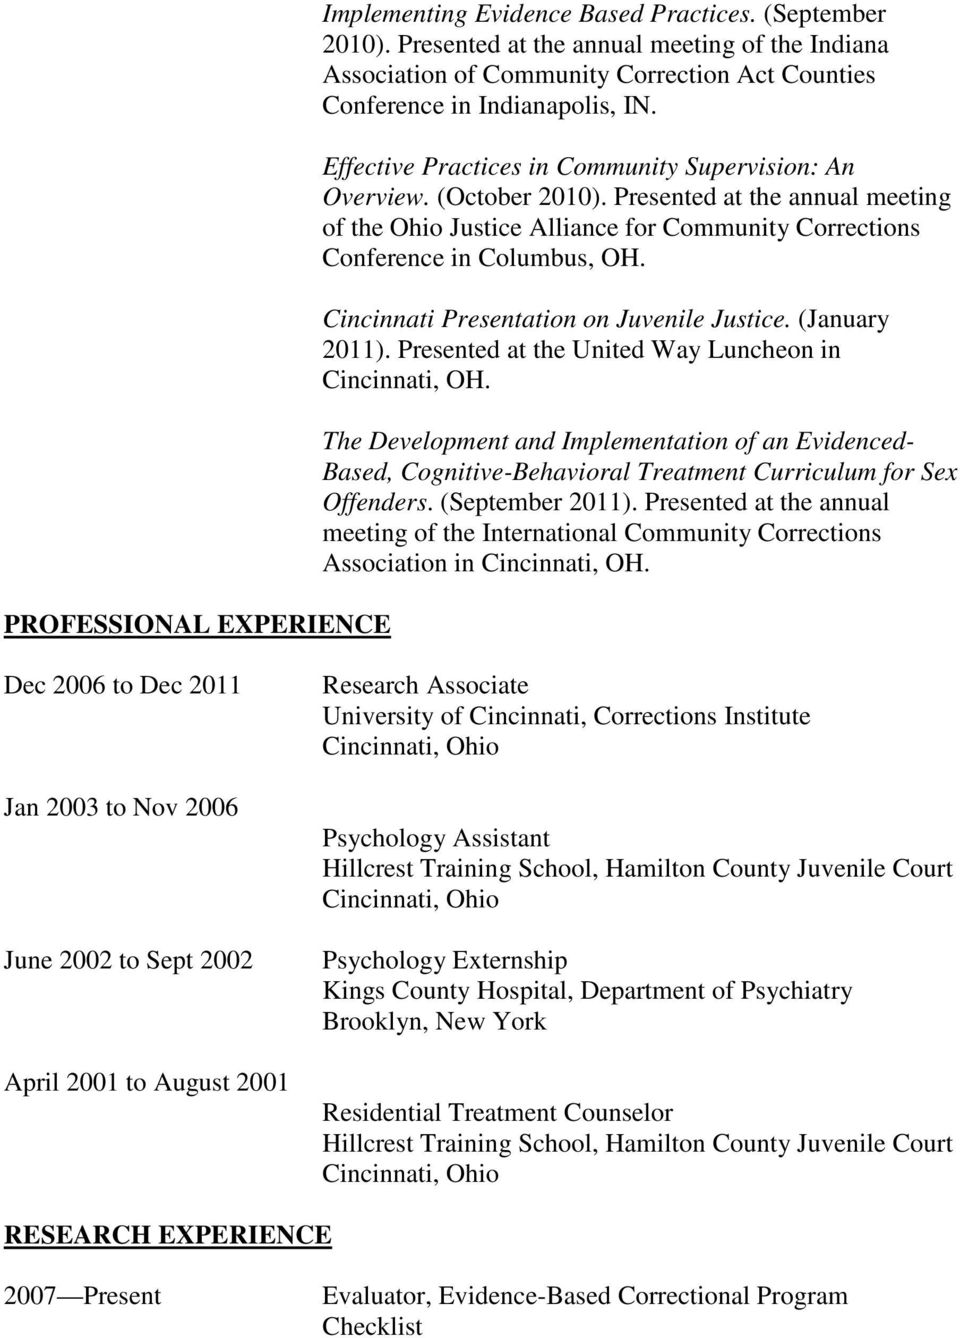 (October 2010). Presented at the annual meeting of the Ohio Justice Alliance for Community Corrections Conference in Columbus, OH. Cincinnati Presentation on Juvenile Justice. (January 2011).